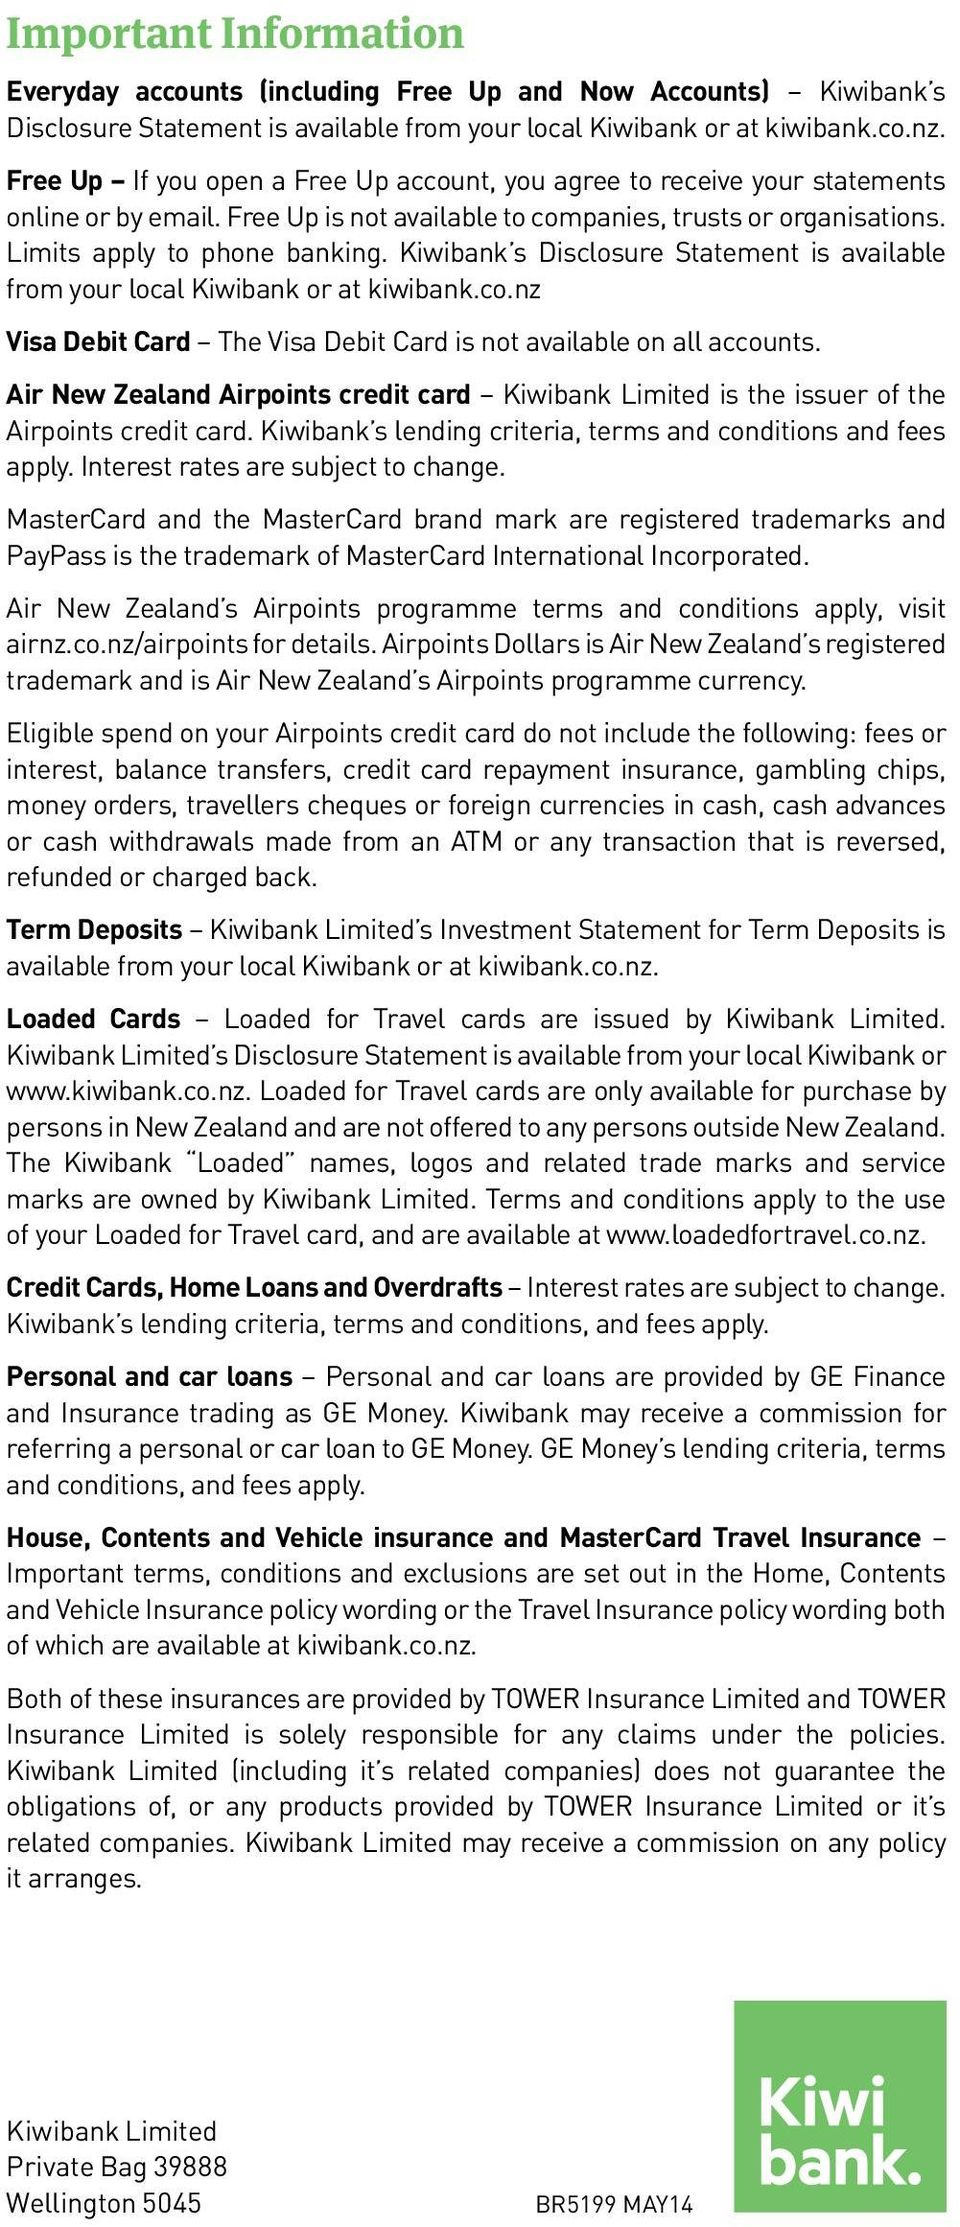 Kiwibank s Disclosure Statement is available from your local Kiwibank or at kiwibank.co.nz Visa Debit Card The Visa Debit Card is not available on all accounts.